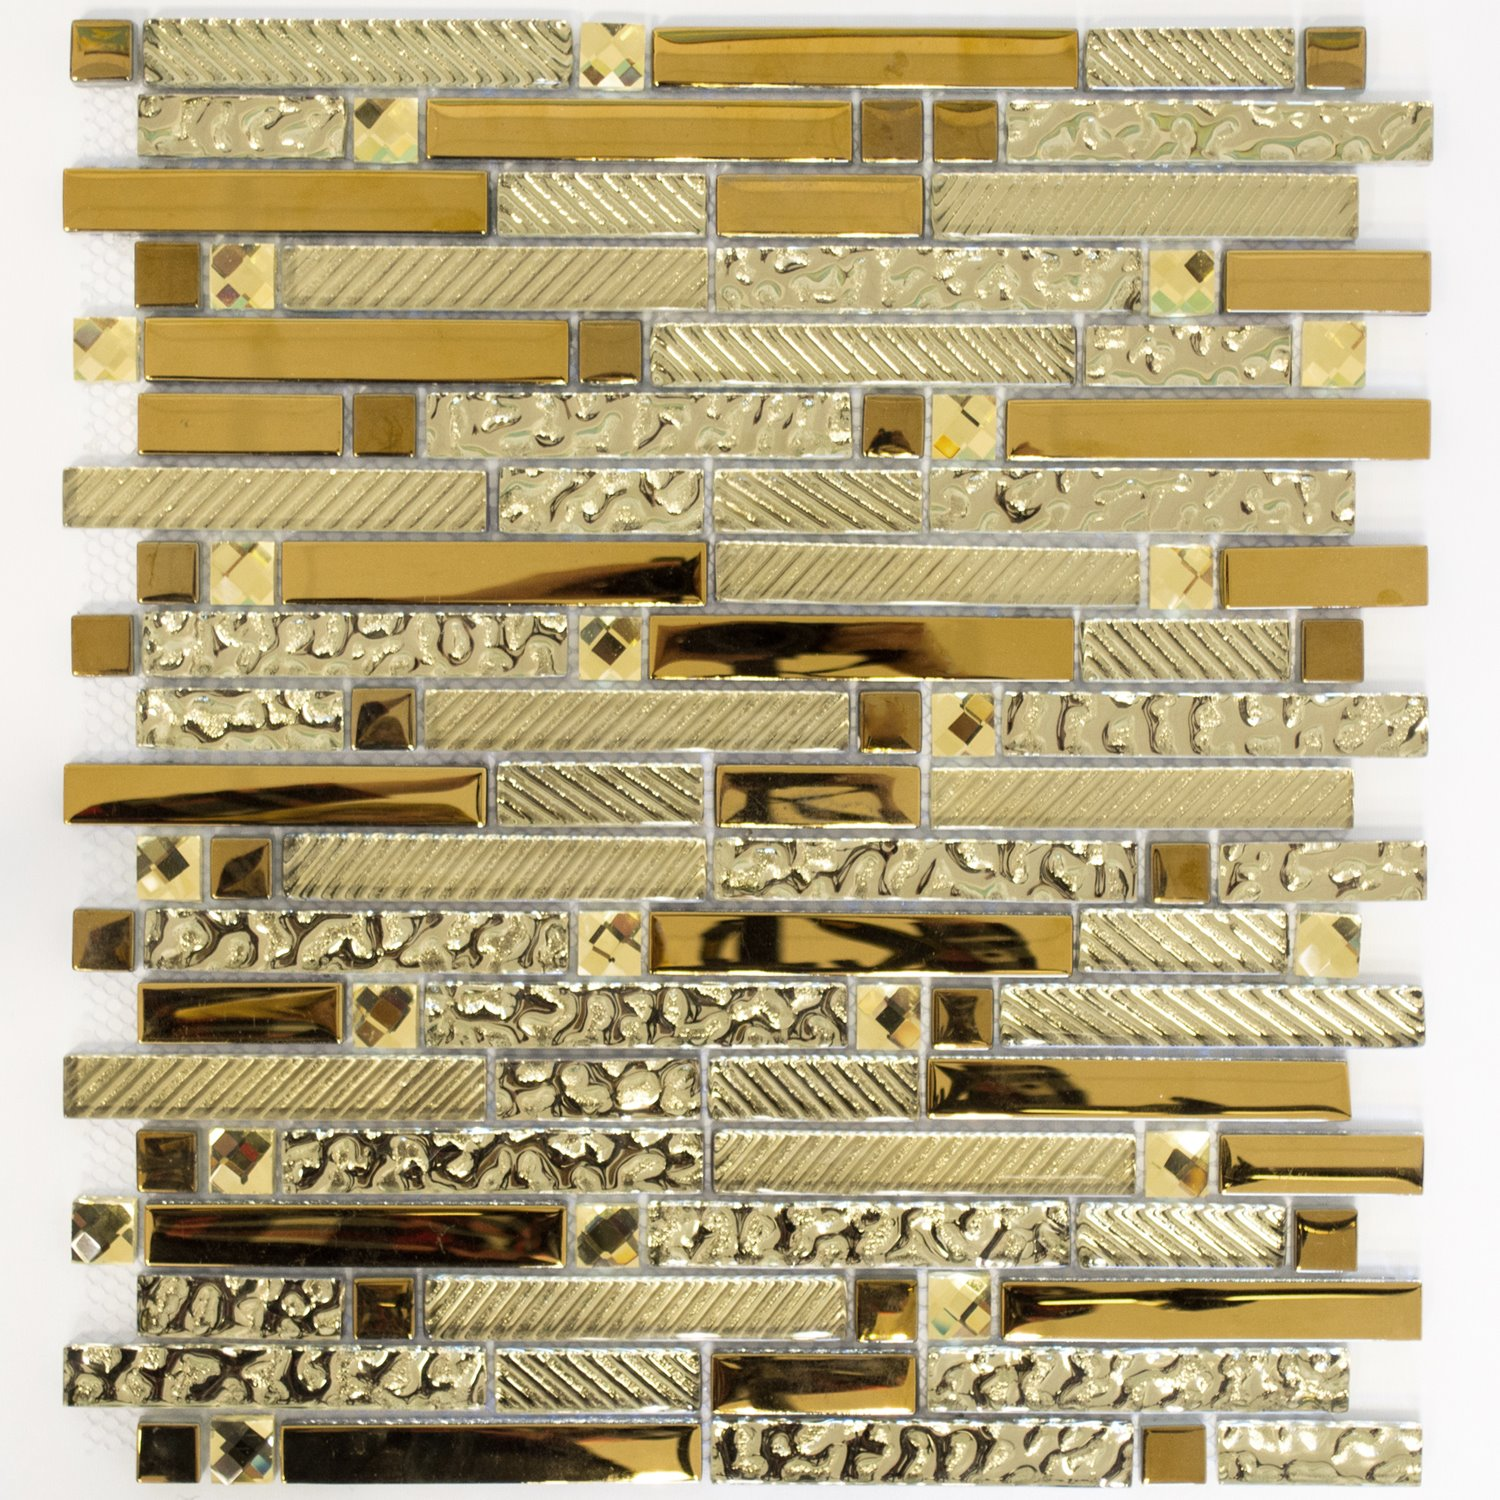 glass structured gold mosaic tiles 15x62x8mm | www.mosafil.co.uk, Hause ideen